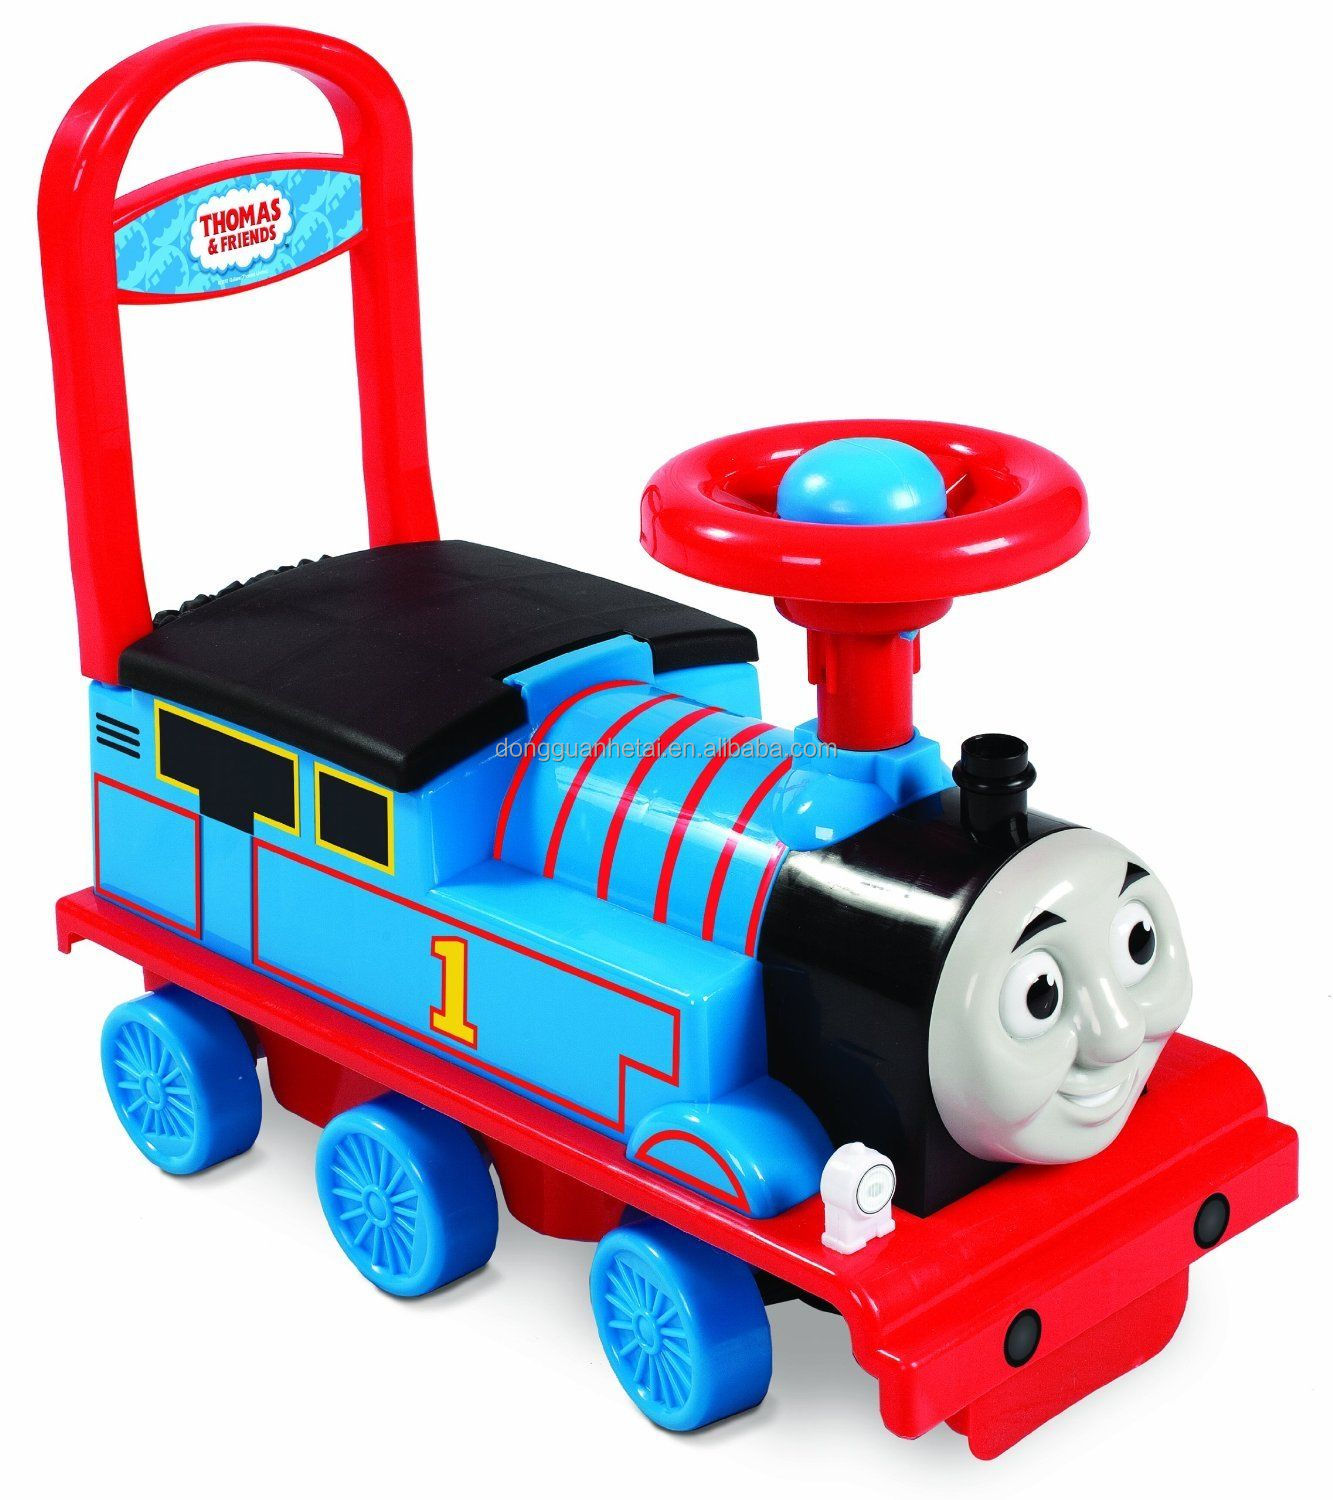 little tikes toddler walker blue train tank engine car kids gift toy cars for kids